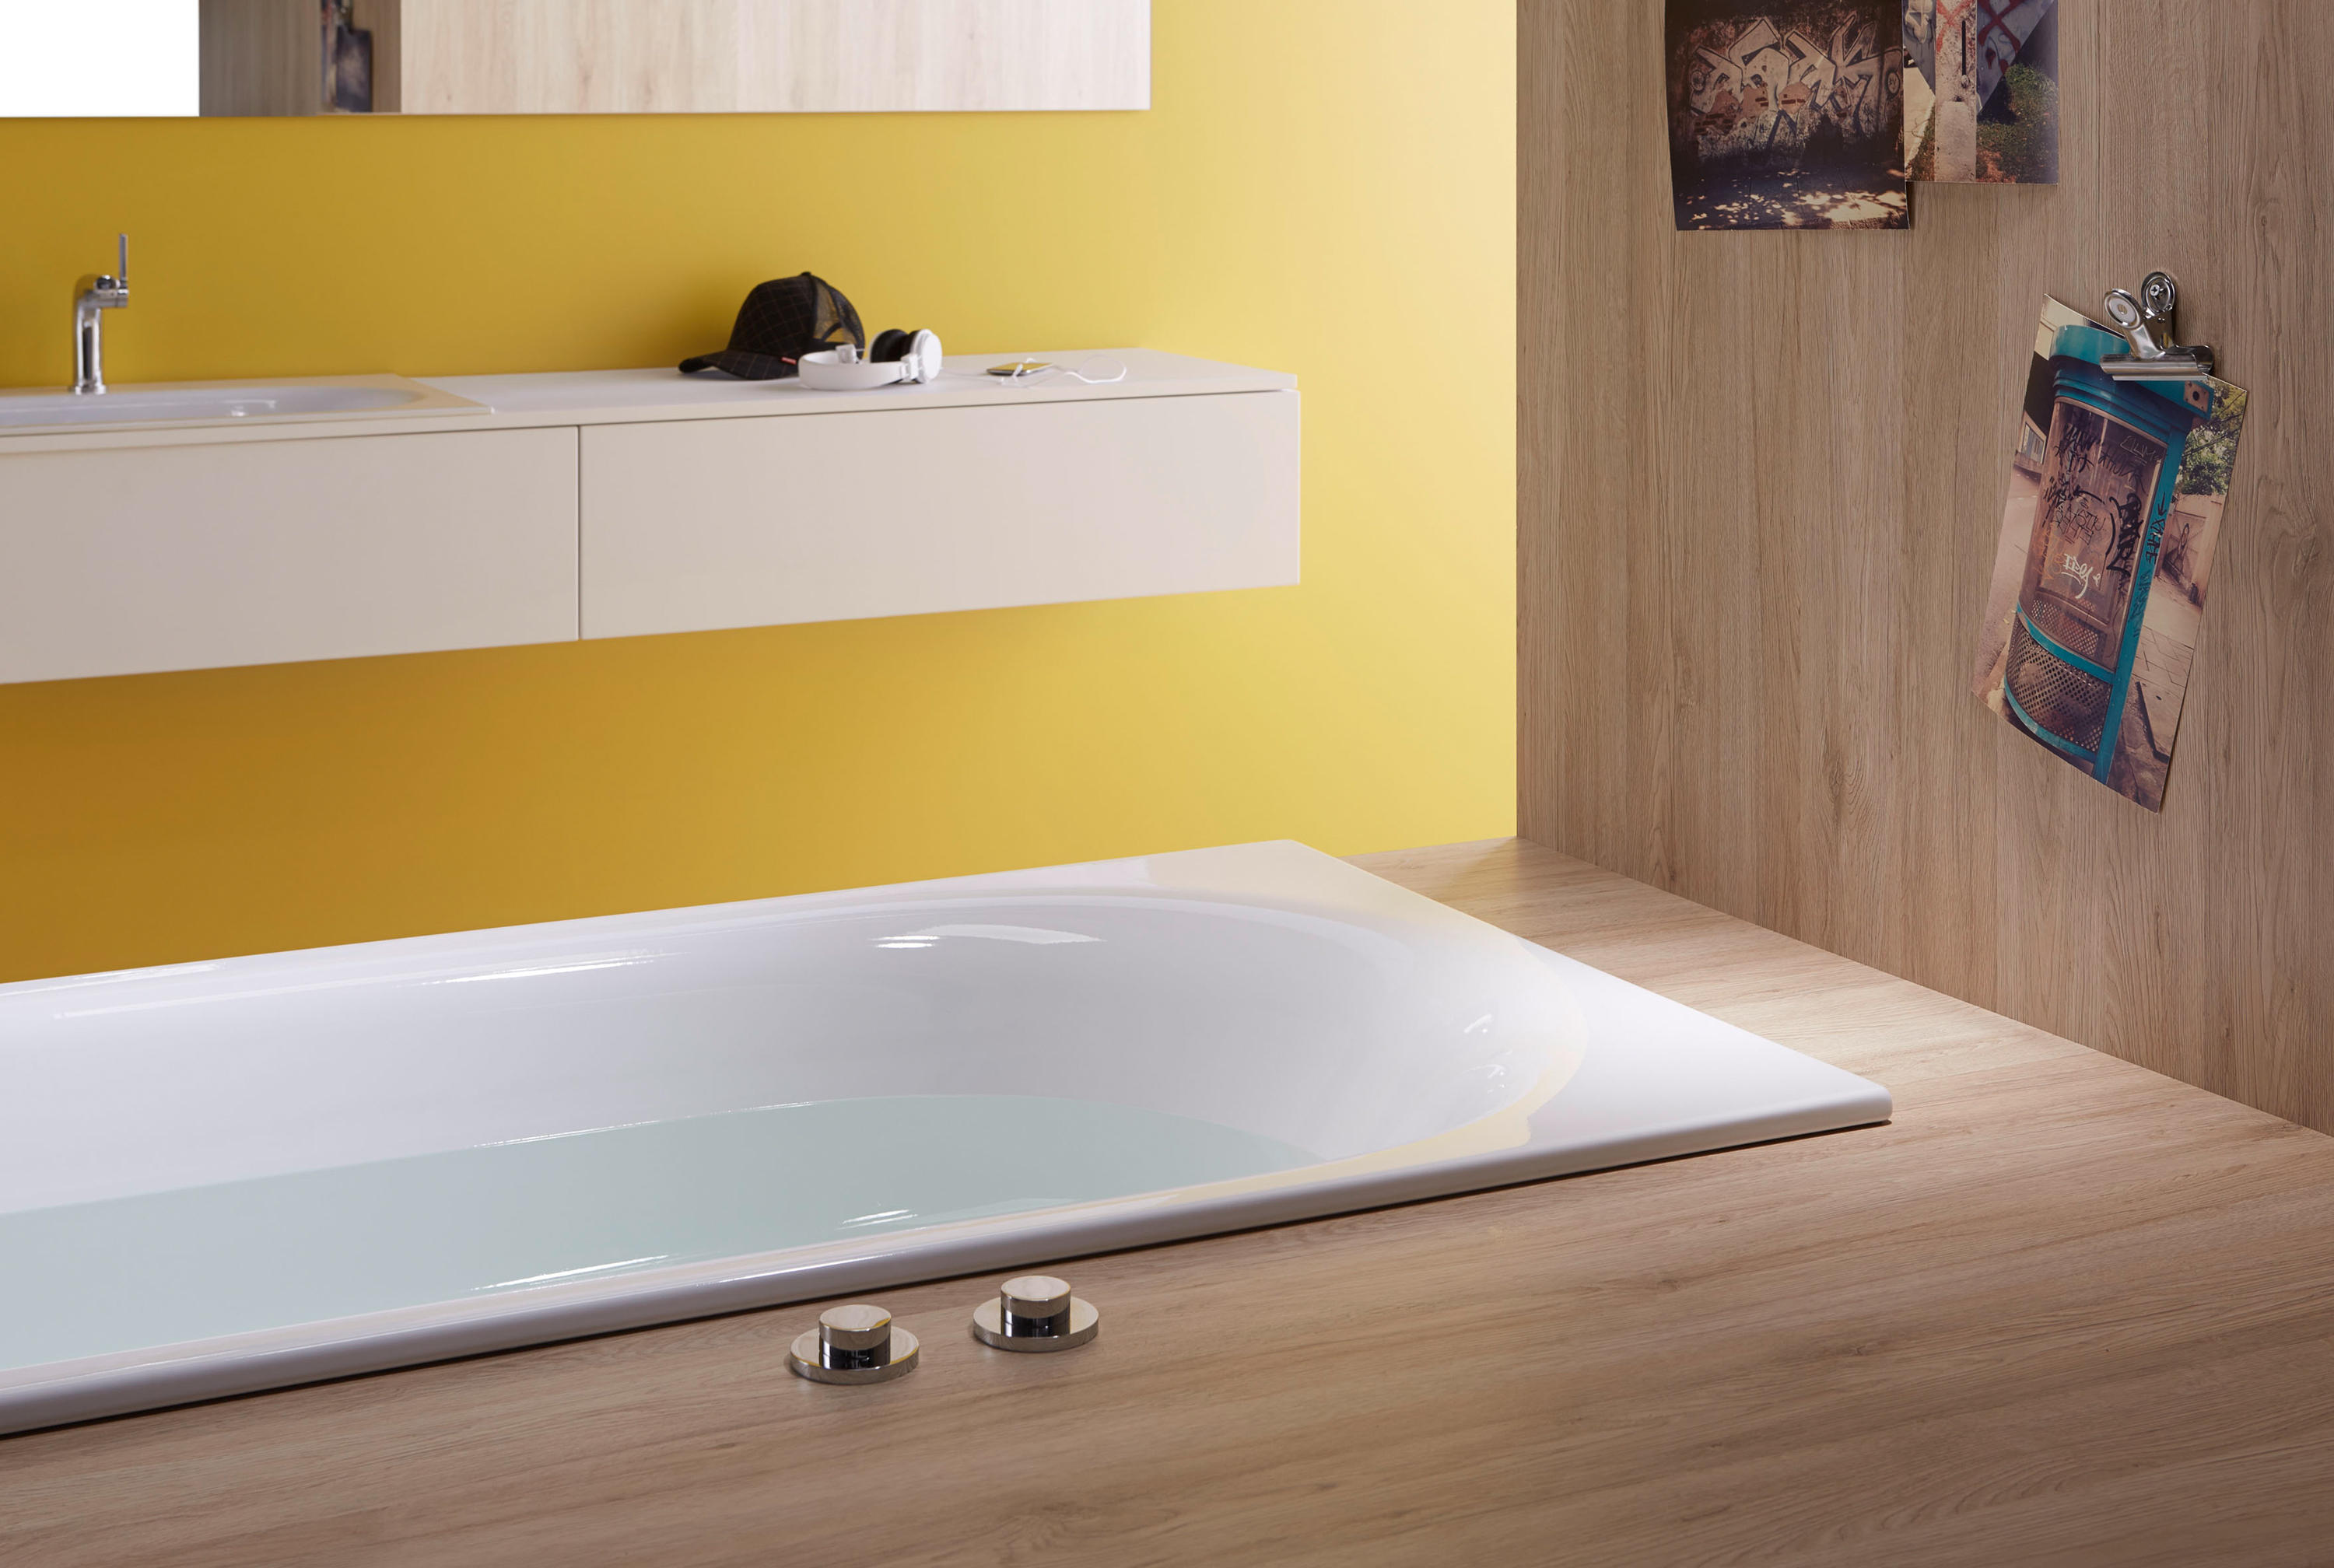 Vasca Da Bagno Bette : Bettecomodo vasca vasche bette architonic